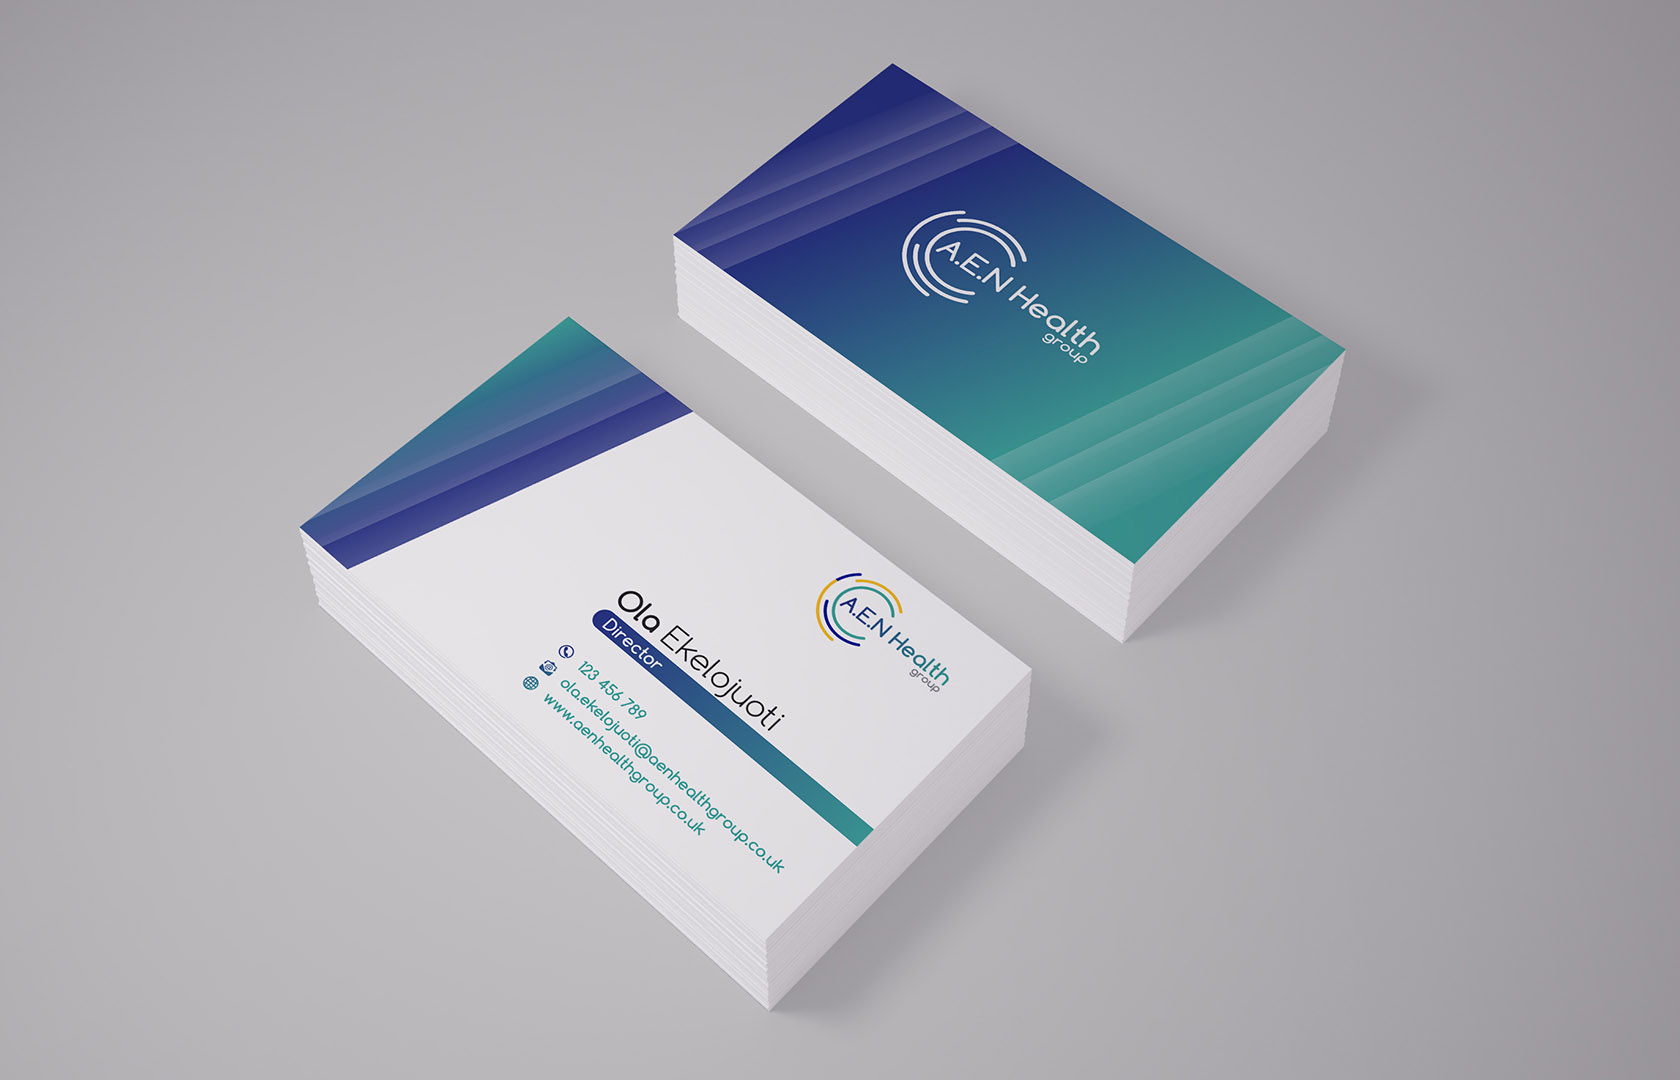 Aen health group business card